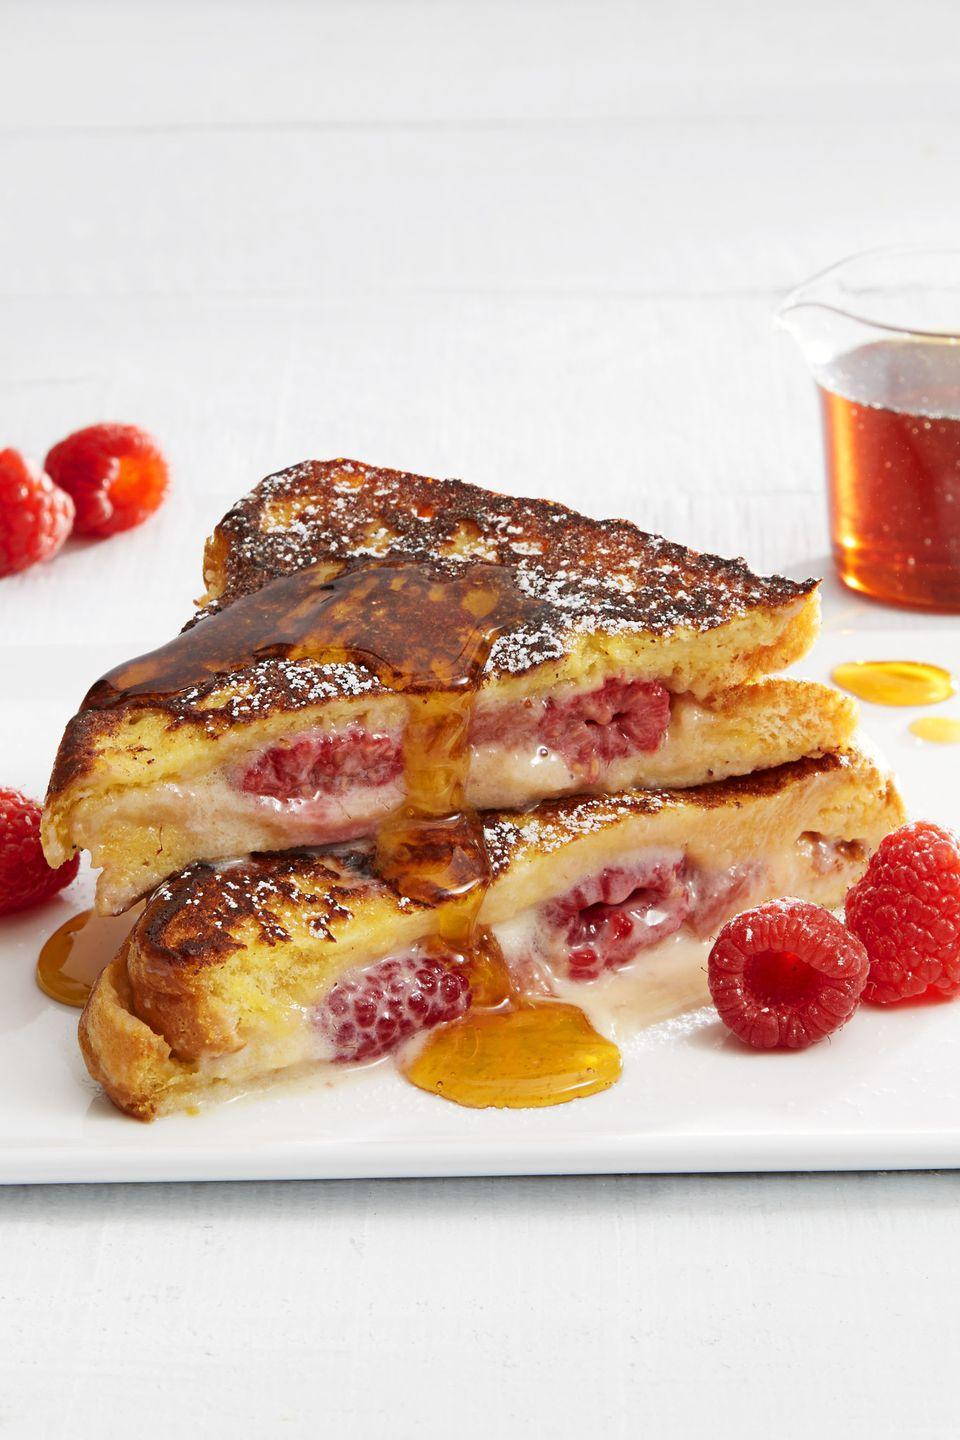 "<p>These raspberry-cheesecake sandwiches are every bit as delectable as they sound. </p><p><em><a href=""https://www.goodhousekeeping.com/food-recipes/a38409/raspberry-cheesecake-french-toast-recipe/"" rel=""nofollow noopener"" target=""_blank"" data-ylk=""slk:Get the recipe for Raspberry &quot;Cheesecake&quot; French Toast »"" class=""link rapid-noclick-resp"">Get the recipe for Raspberry ""Cheesecake"" French Toast » </a></em></p>"